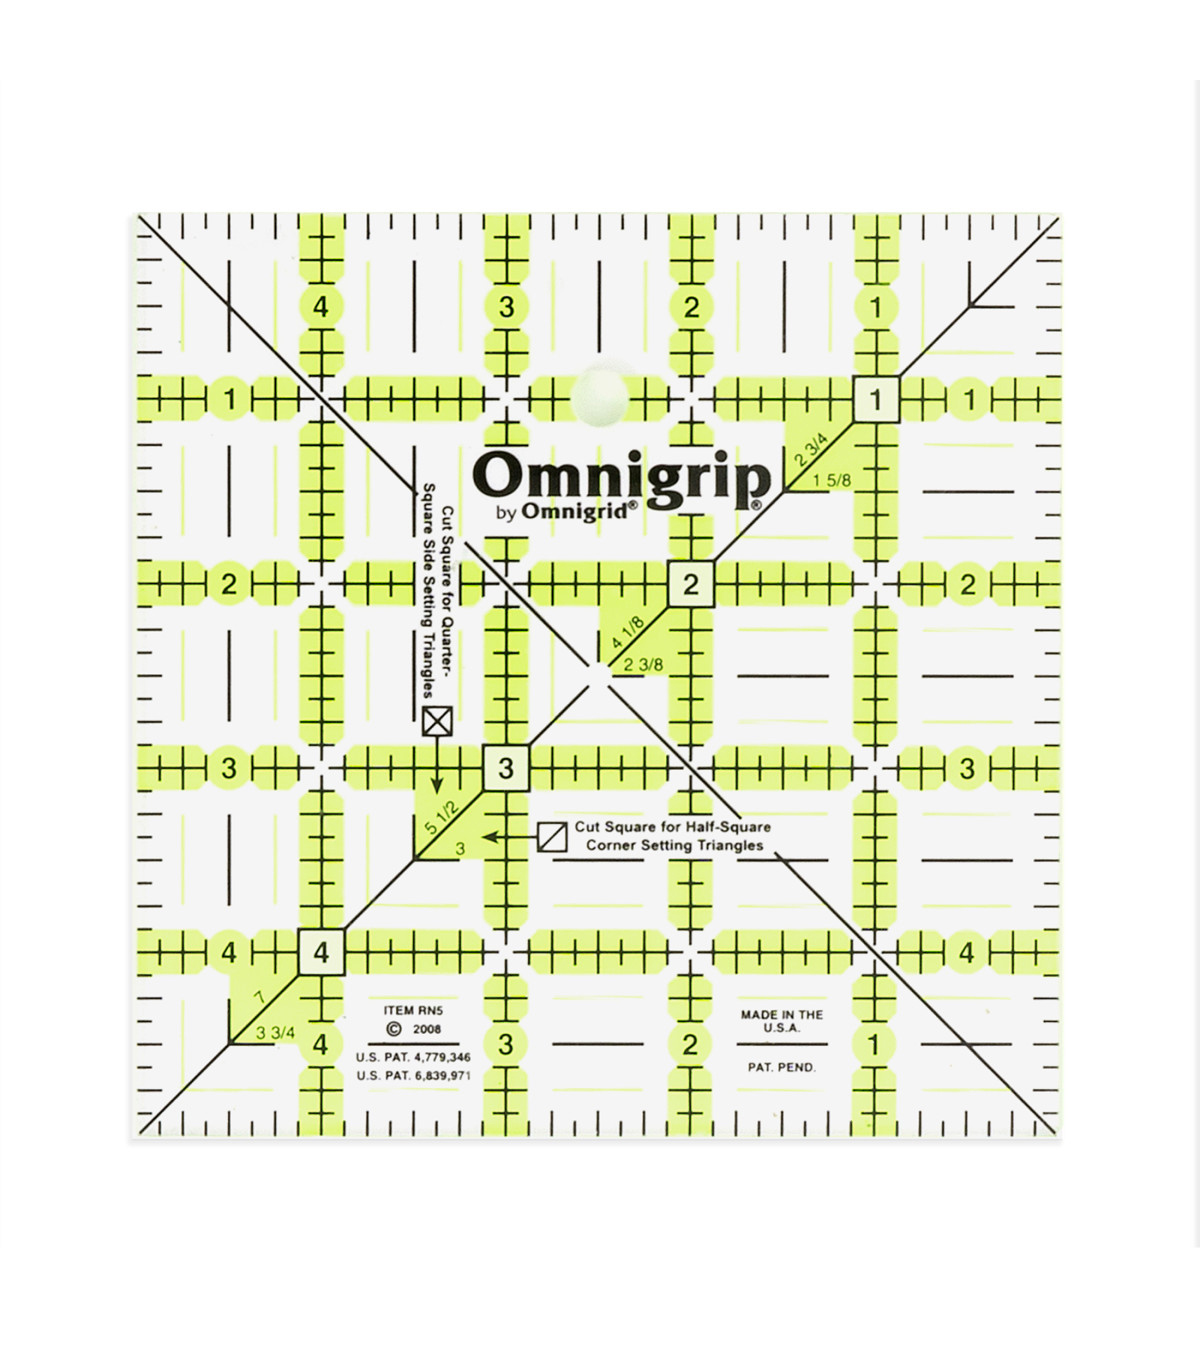 Omnigrip by Omnigrid Non-Slip Quilter\u0027s Ruler For Cutting & Squaring